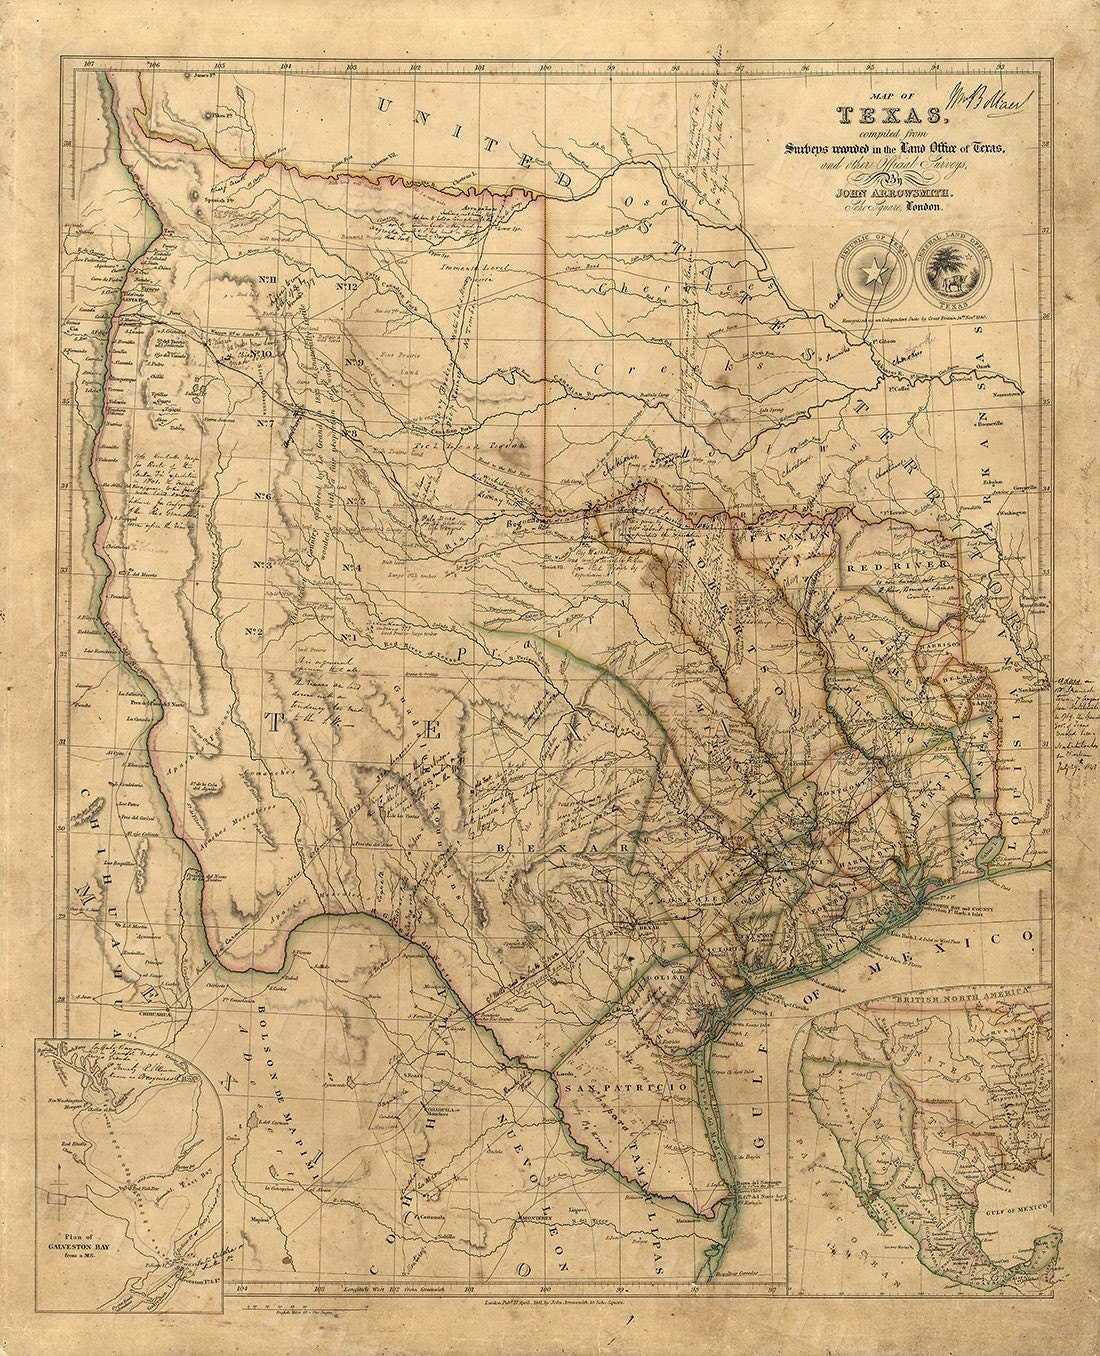 Old Texas wall Map 1841 Historical Texas map Antique